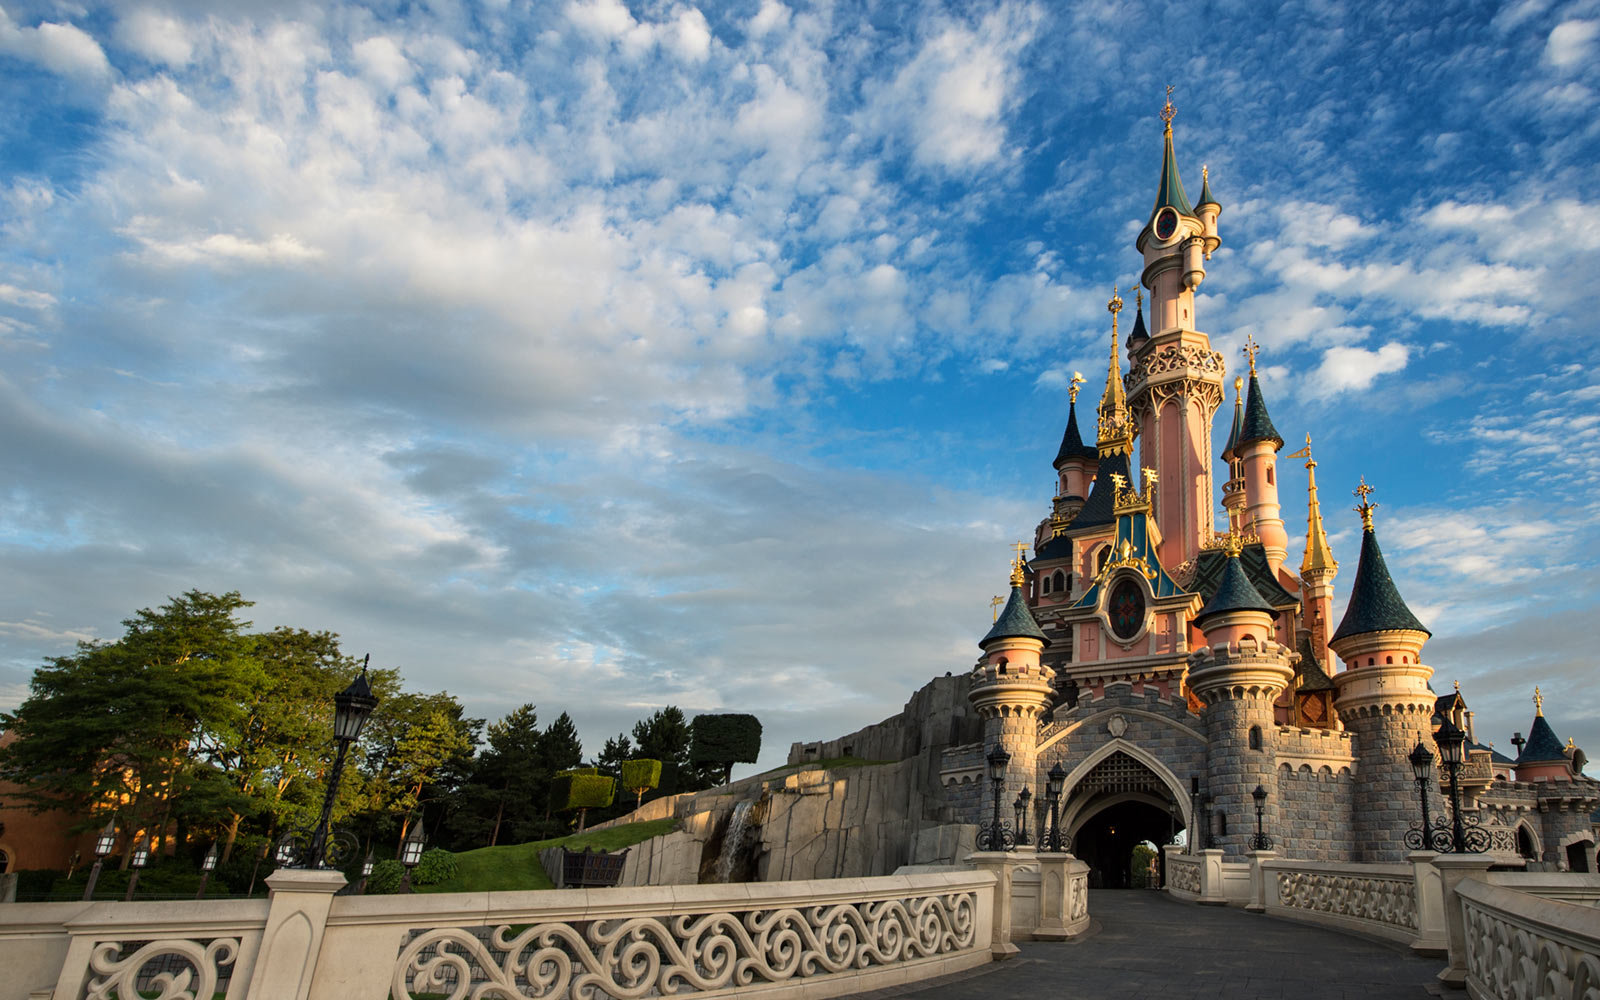 Sleeping Beauty Castle, Disneyland Paris, France